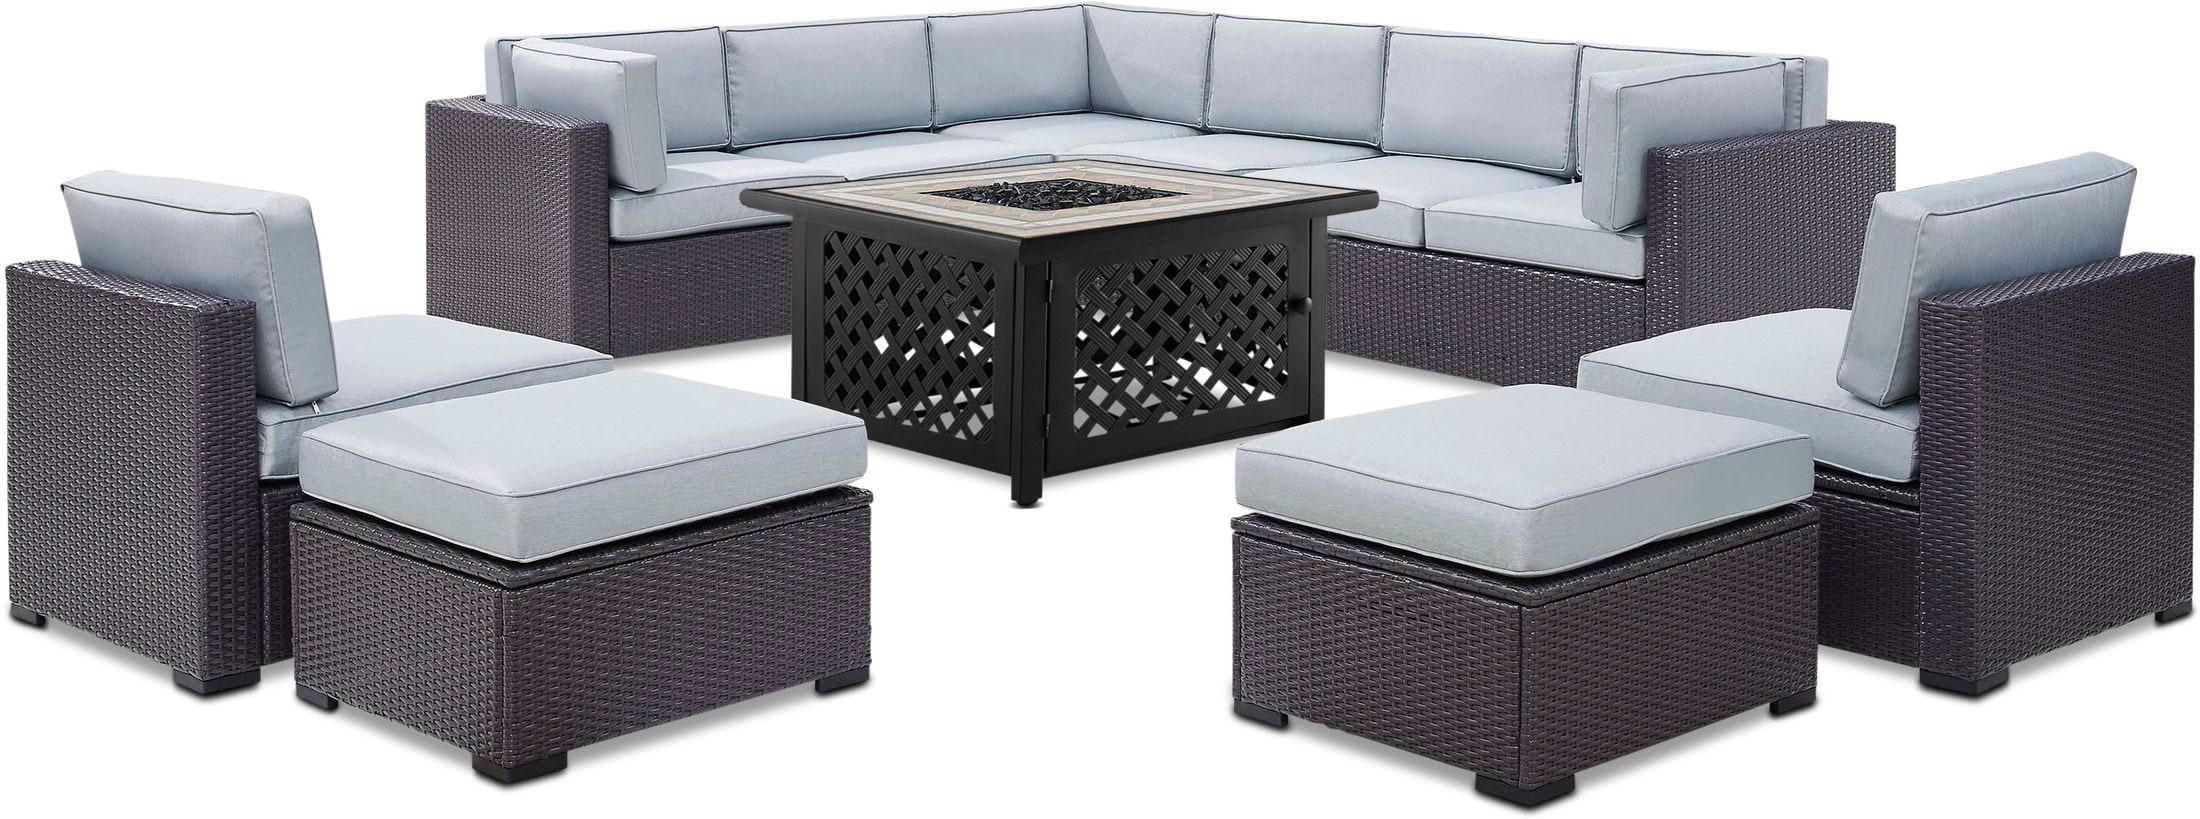 Outdoor Furniture - Isla 3-Piece Outdoor Sectional, 2 Armless Chairs, 2 Ottomans and Fire Table Set